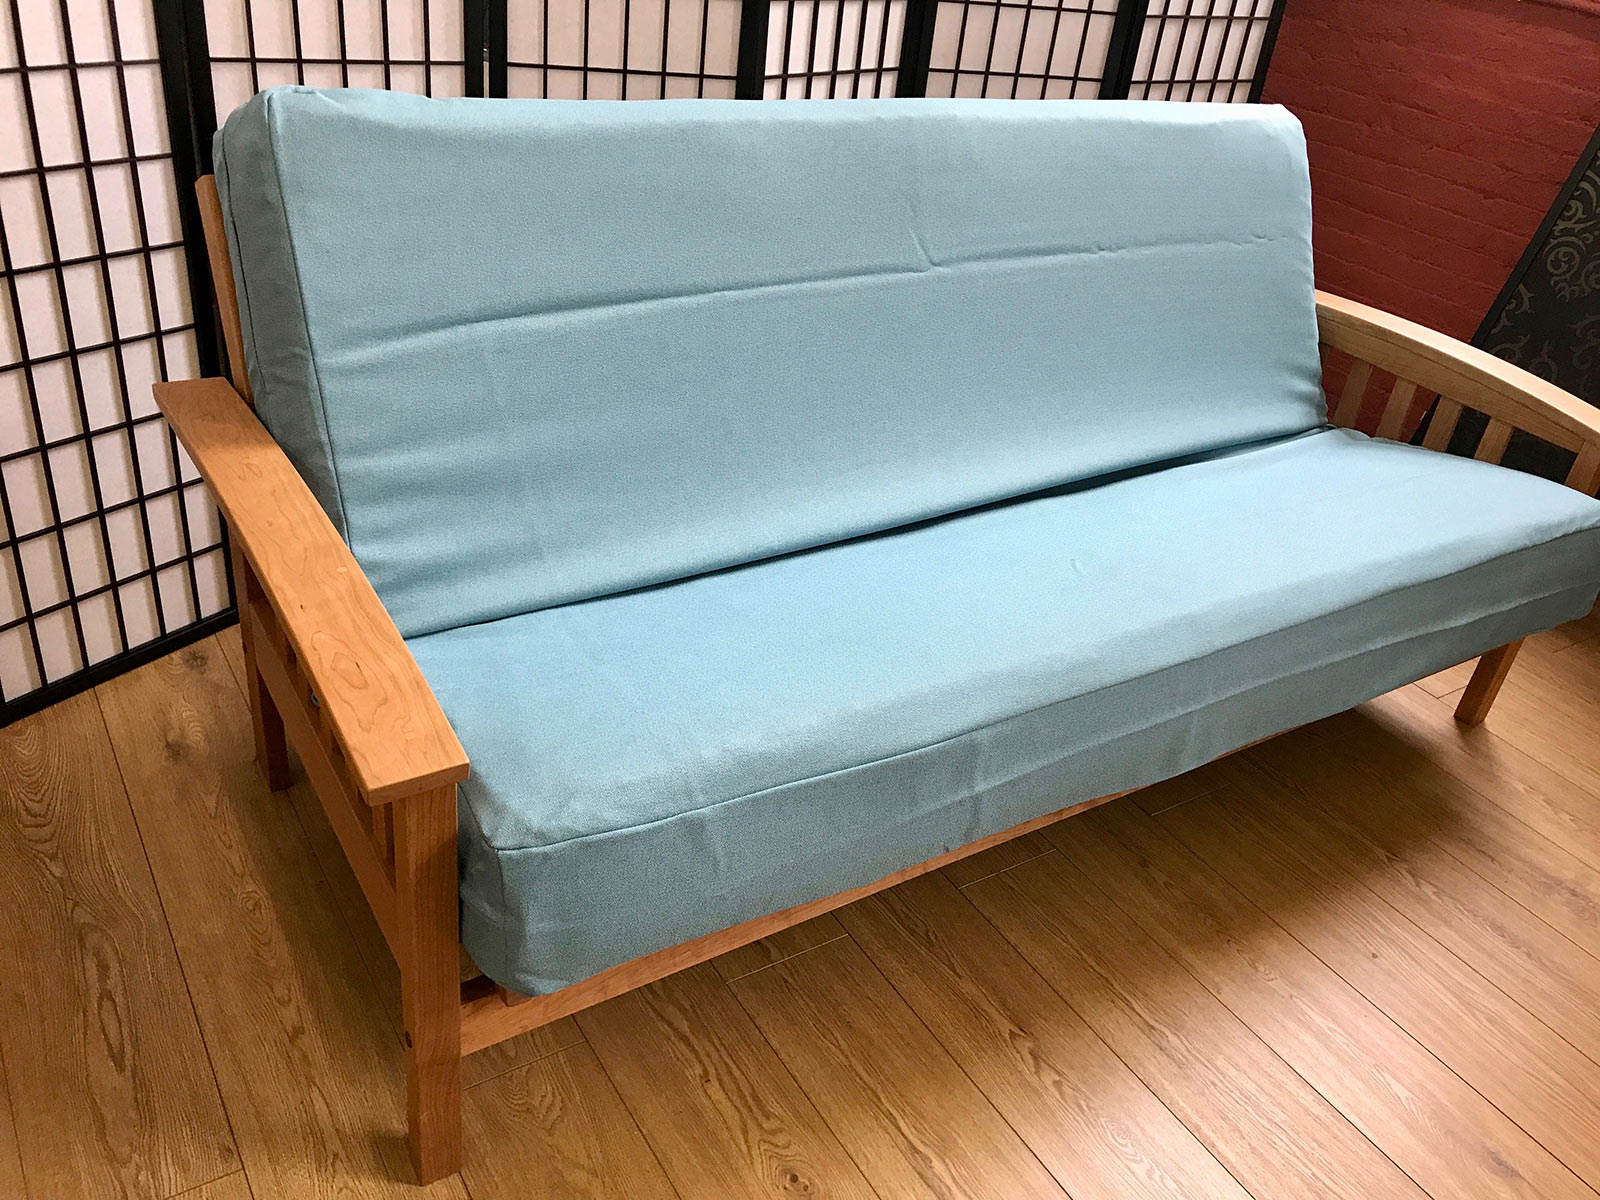 futon two couch sofa living room leather denim cover dfs futons sofas pottery barn seat blue covers slipcover event for decor livingroom